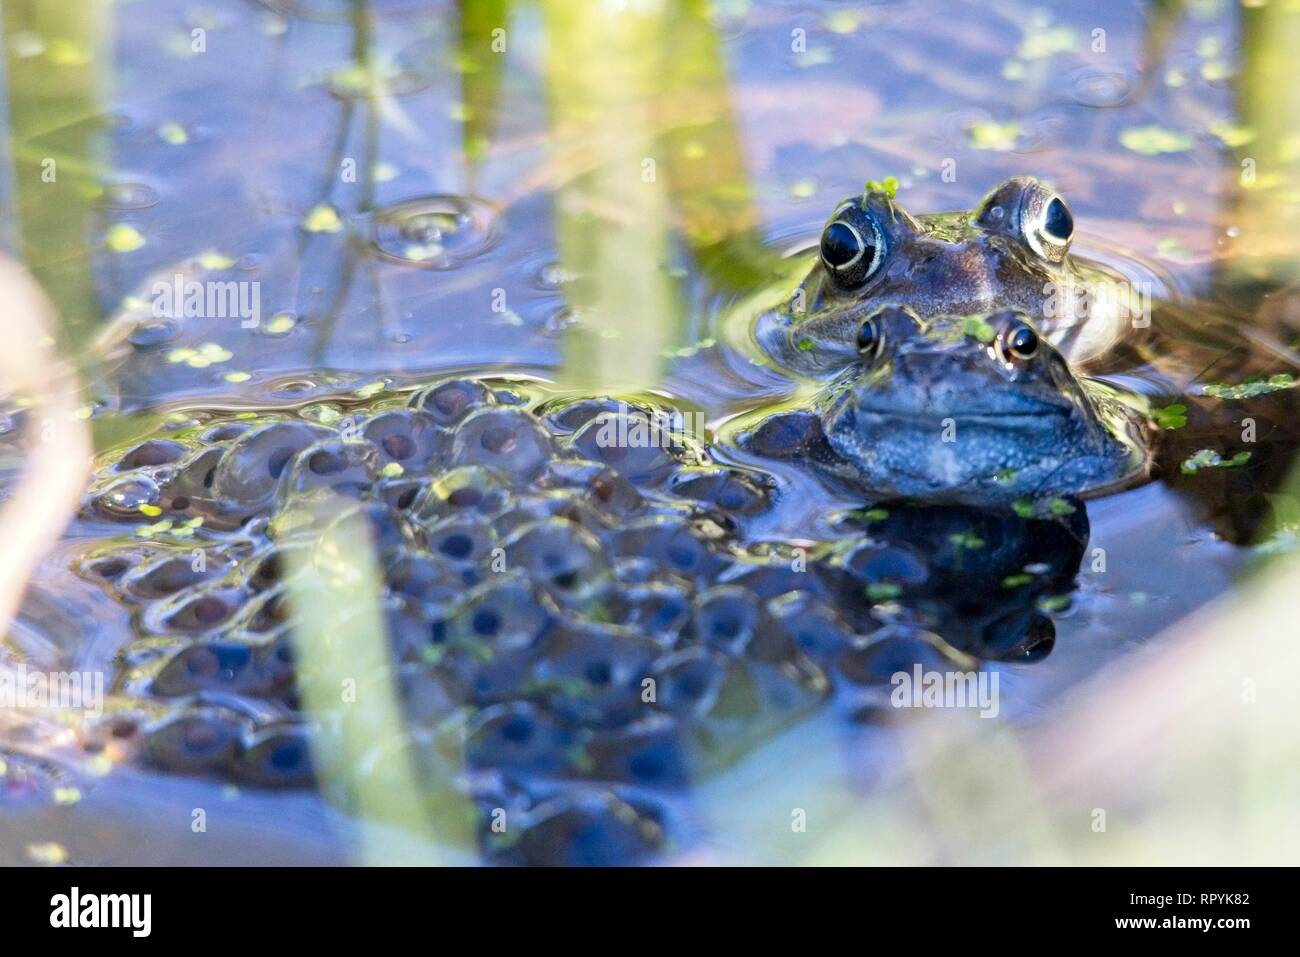 Hailsham, UK. 23rd Feb 2019. Signs of spring today as a Common frog (Rana temporaria) sits among a pile of spawn laid overnight in Hailsham, East Sussex, UK. Credit: Ed Brown/Alamy Live News - Stock Image